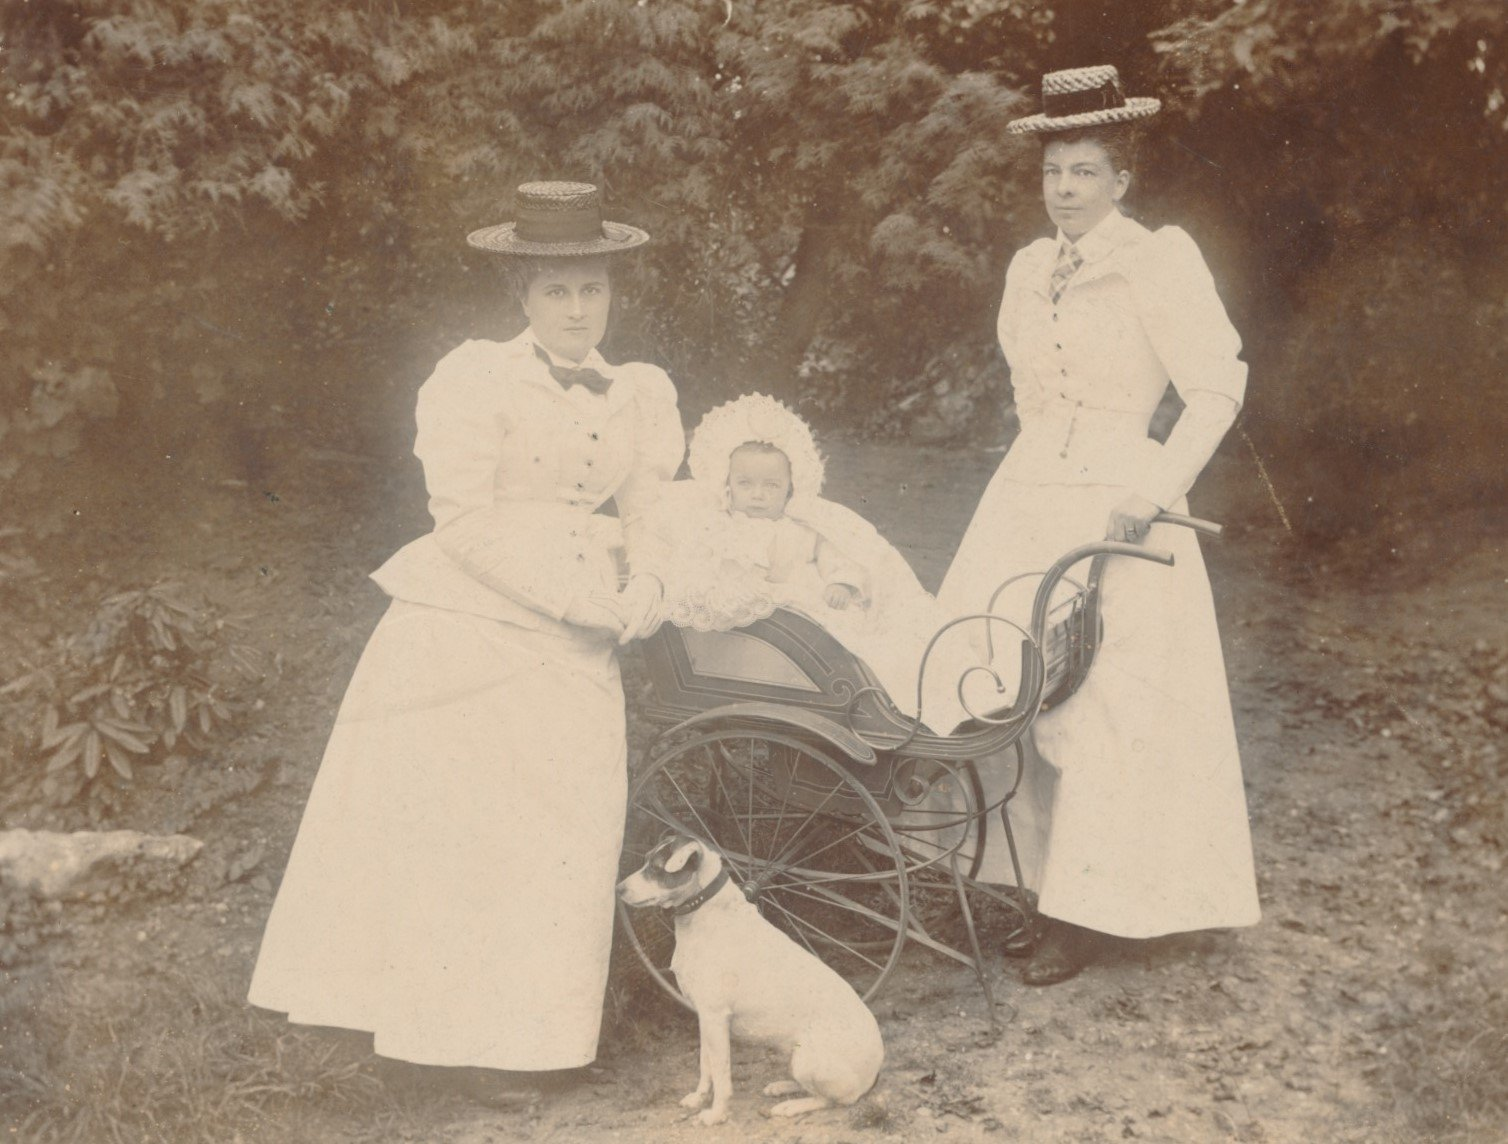 Fanny Catherine Draper (1866-1944), pictured right, with her daughter Victoria 'Kathleen' Smith (1897-1978)